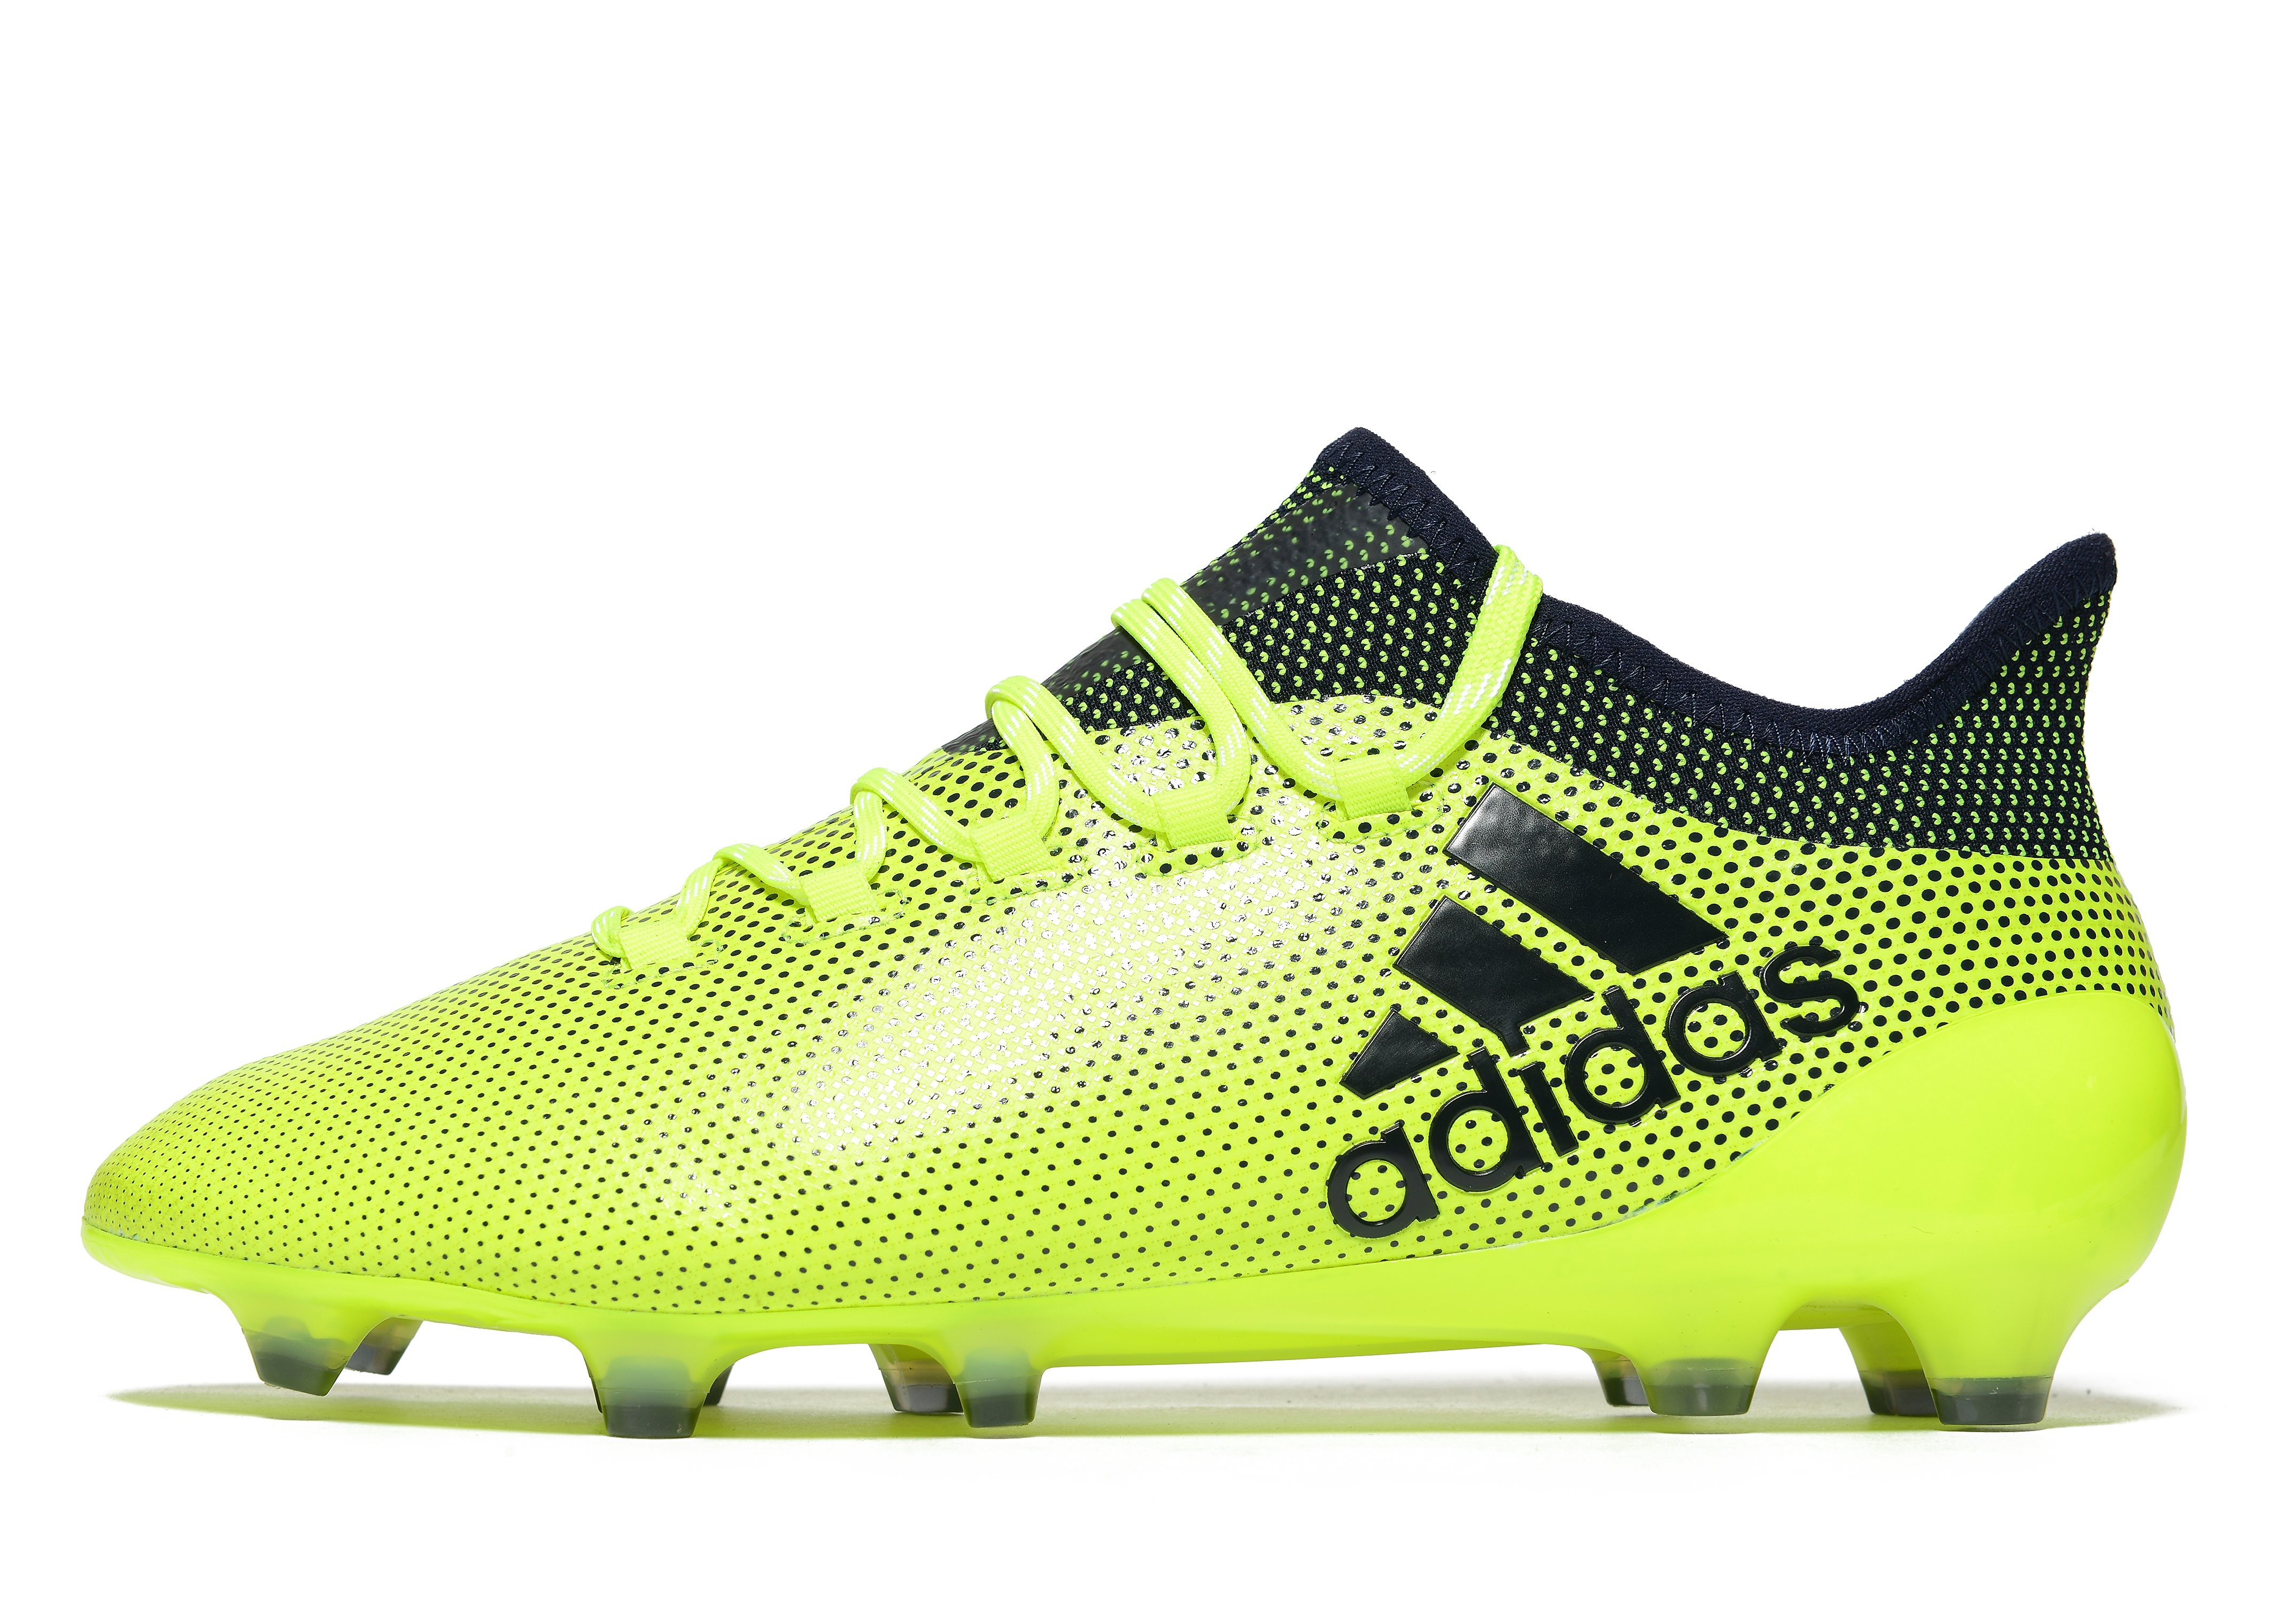 adidas Ocean Storm X 17.1 Firm Ground Boots